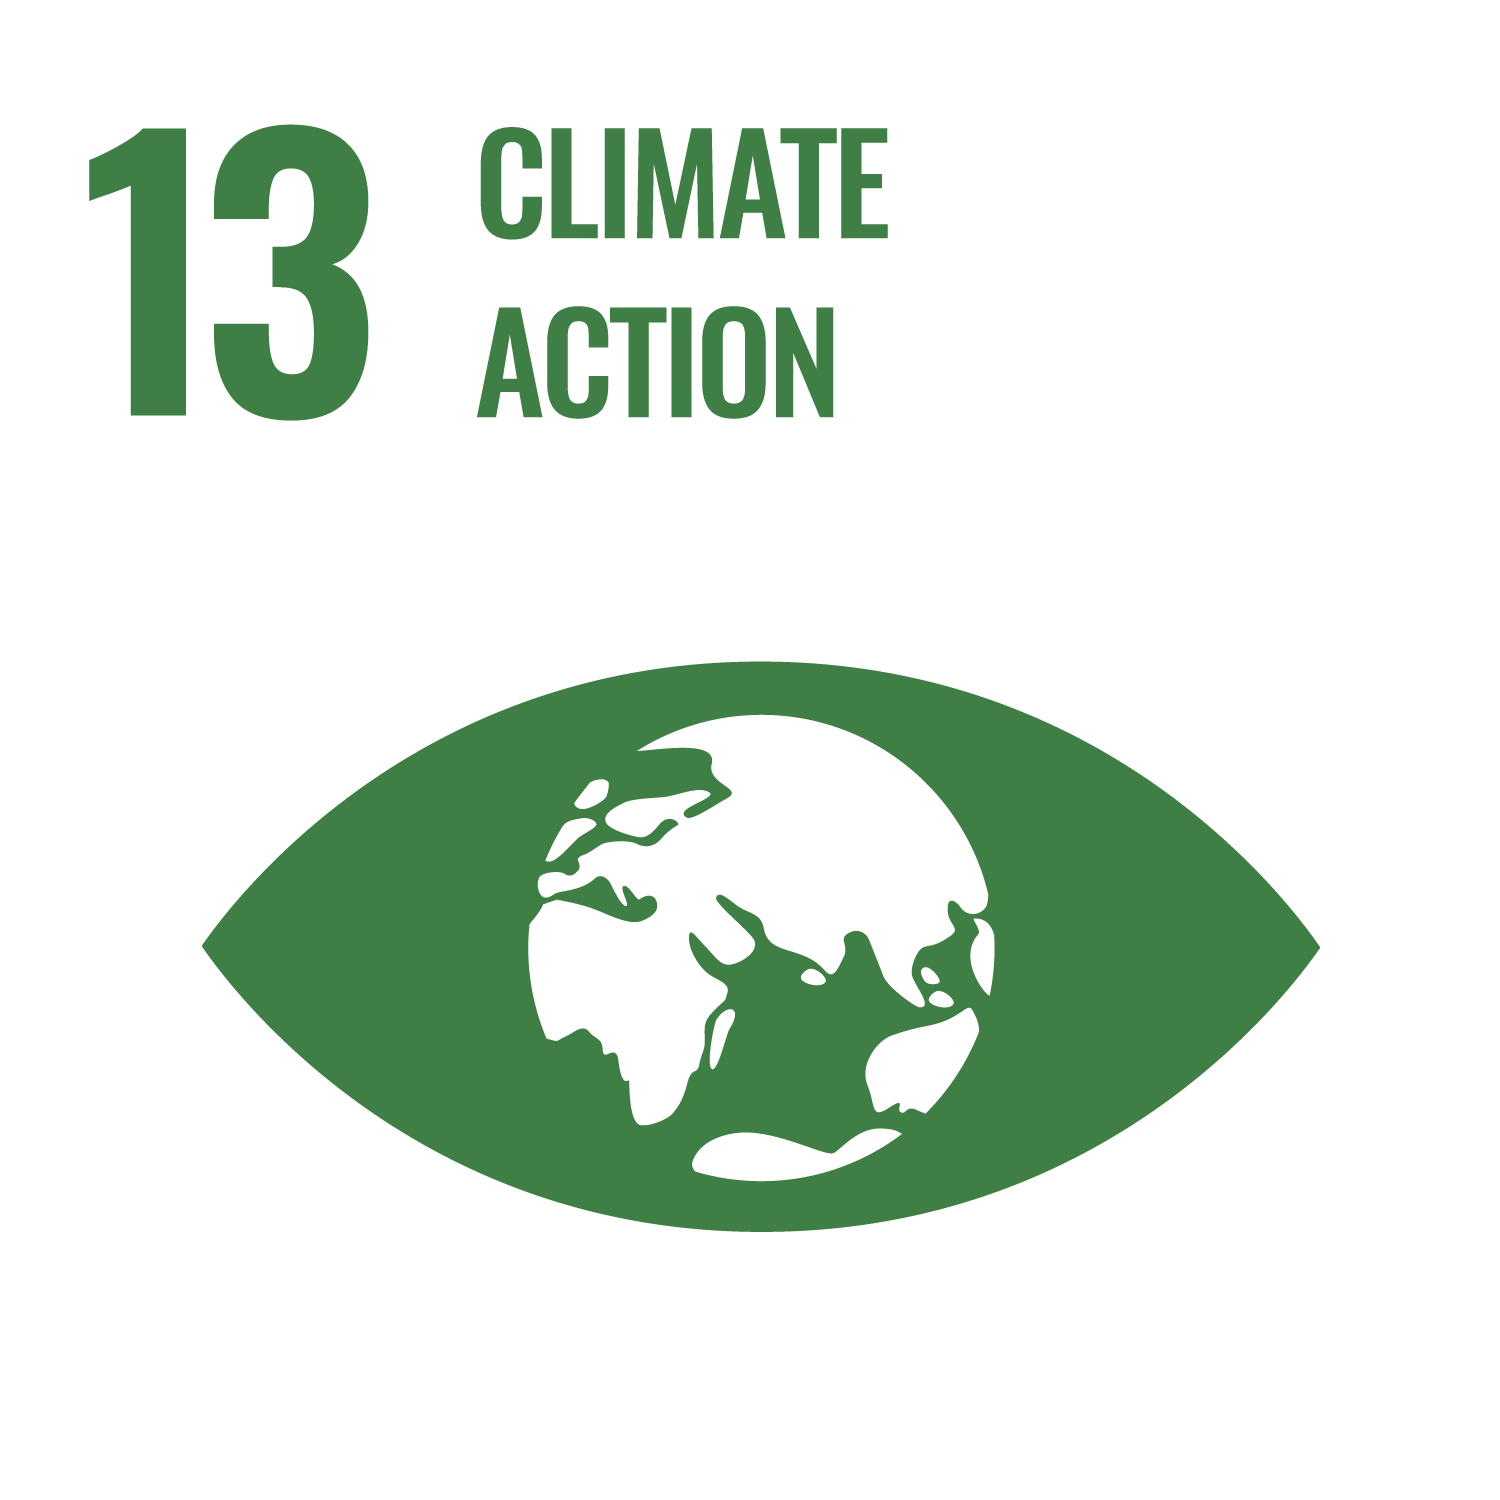 13_Climate_Action